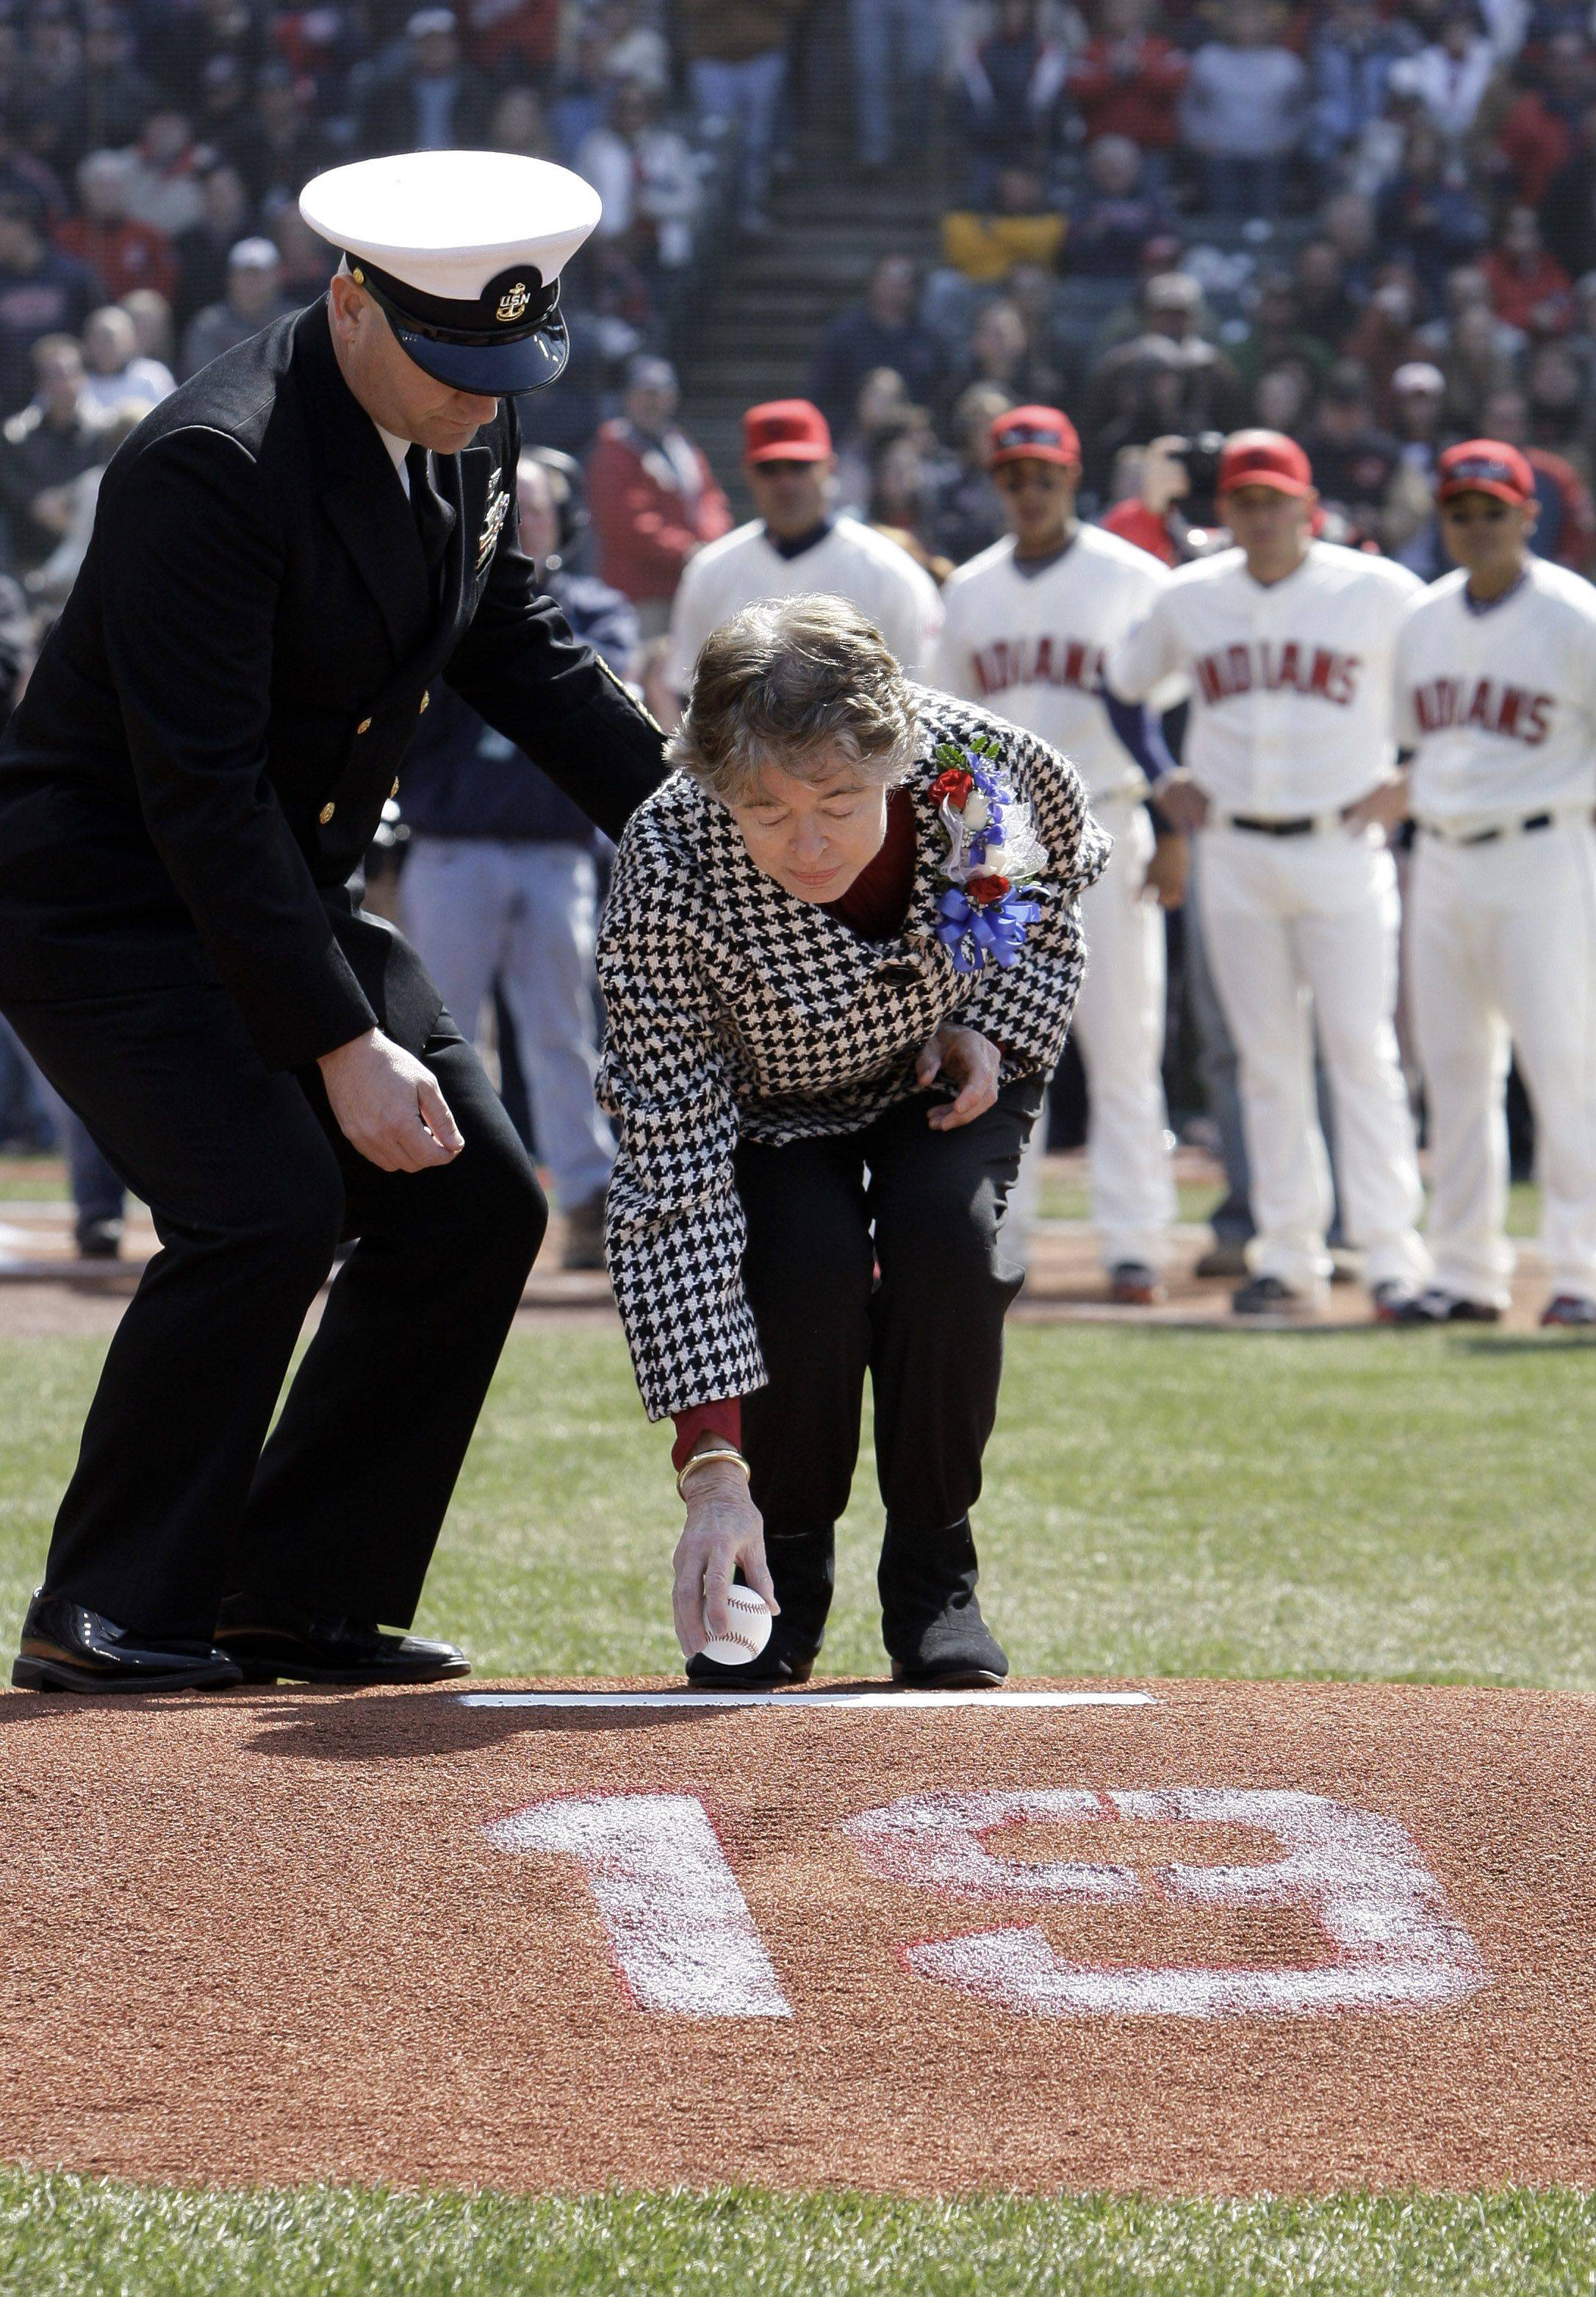 Anne Feller, wife of the late Cleveland Indians player Bob Feller, places a baseball on the mound before the Indians play the Chicago White Sox in an opening day baseball game on Friday, April 1, 2011, in Cleveland. Feller is assisted by Navy Chief Petty Officer Tod Green.